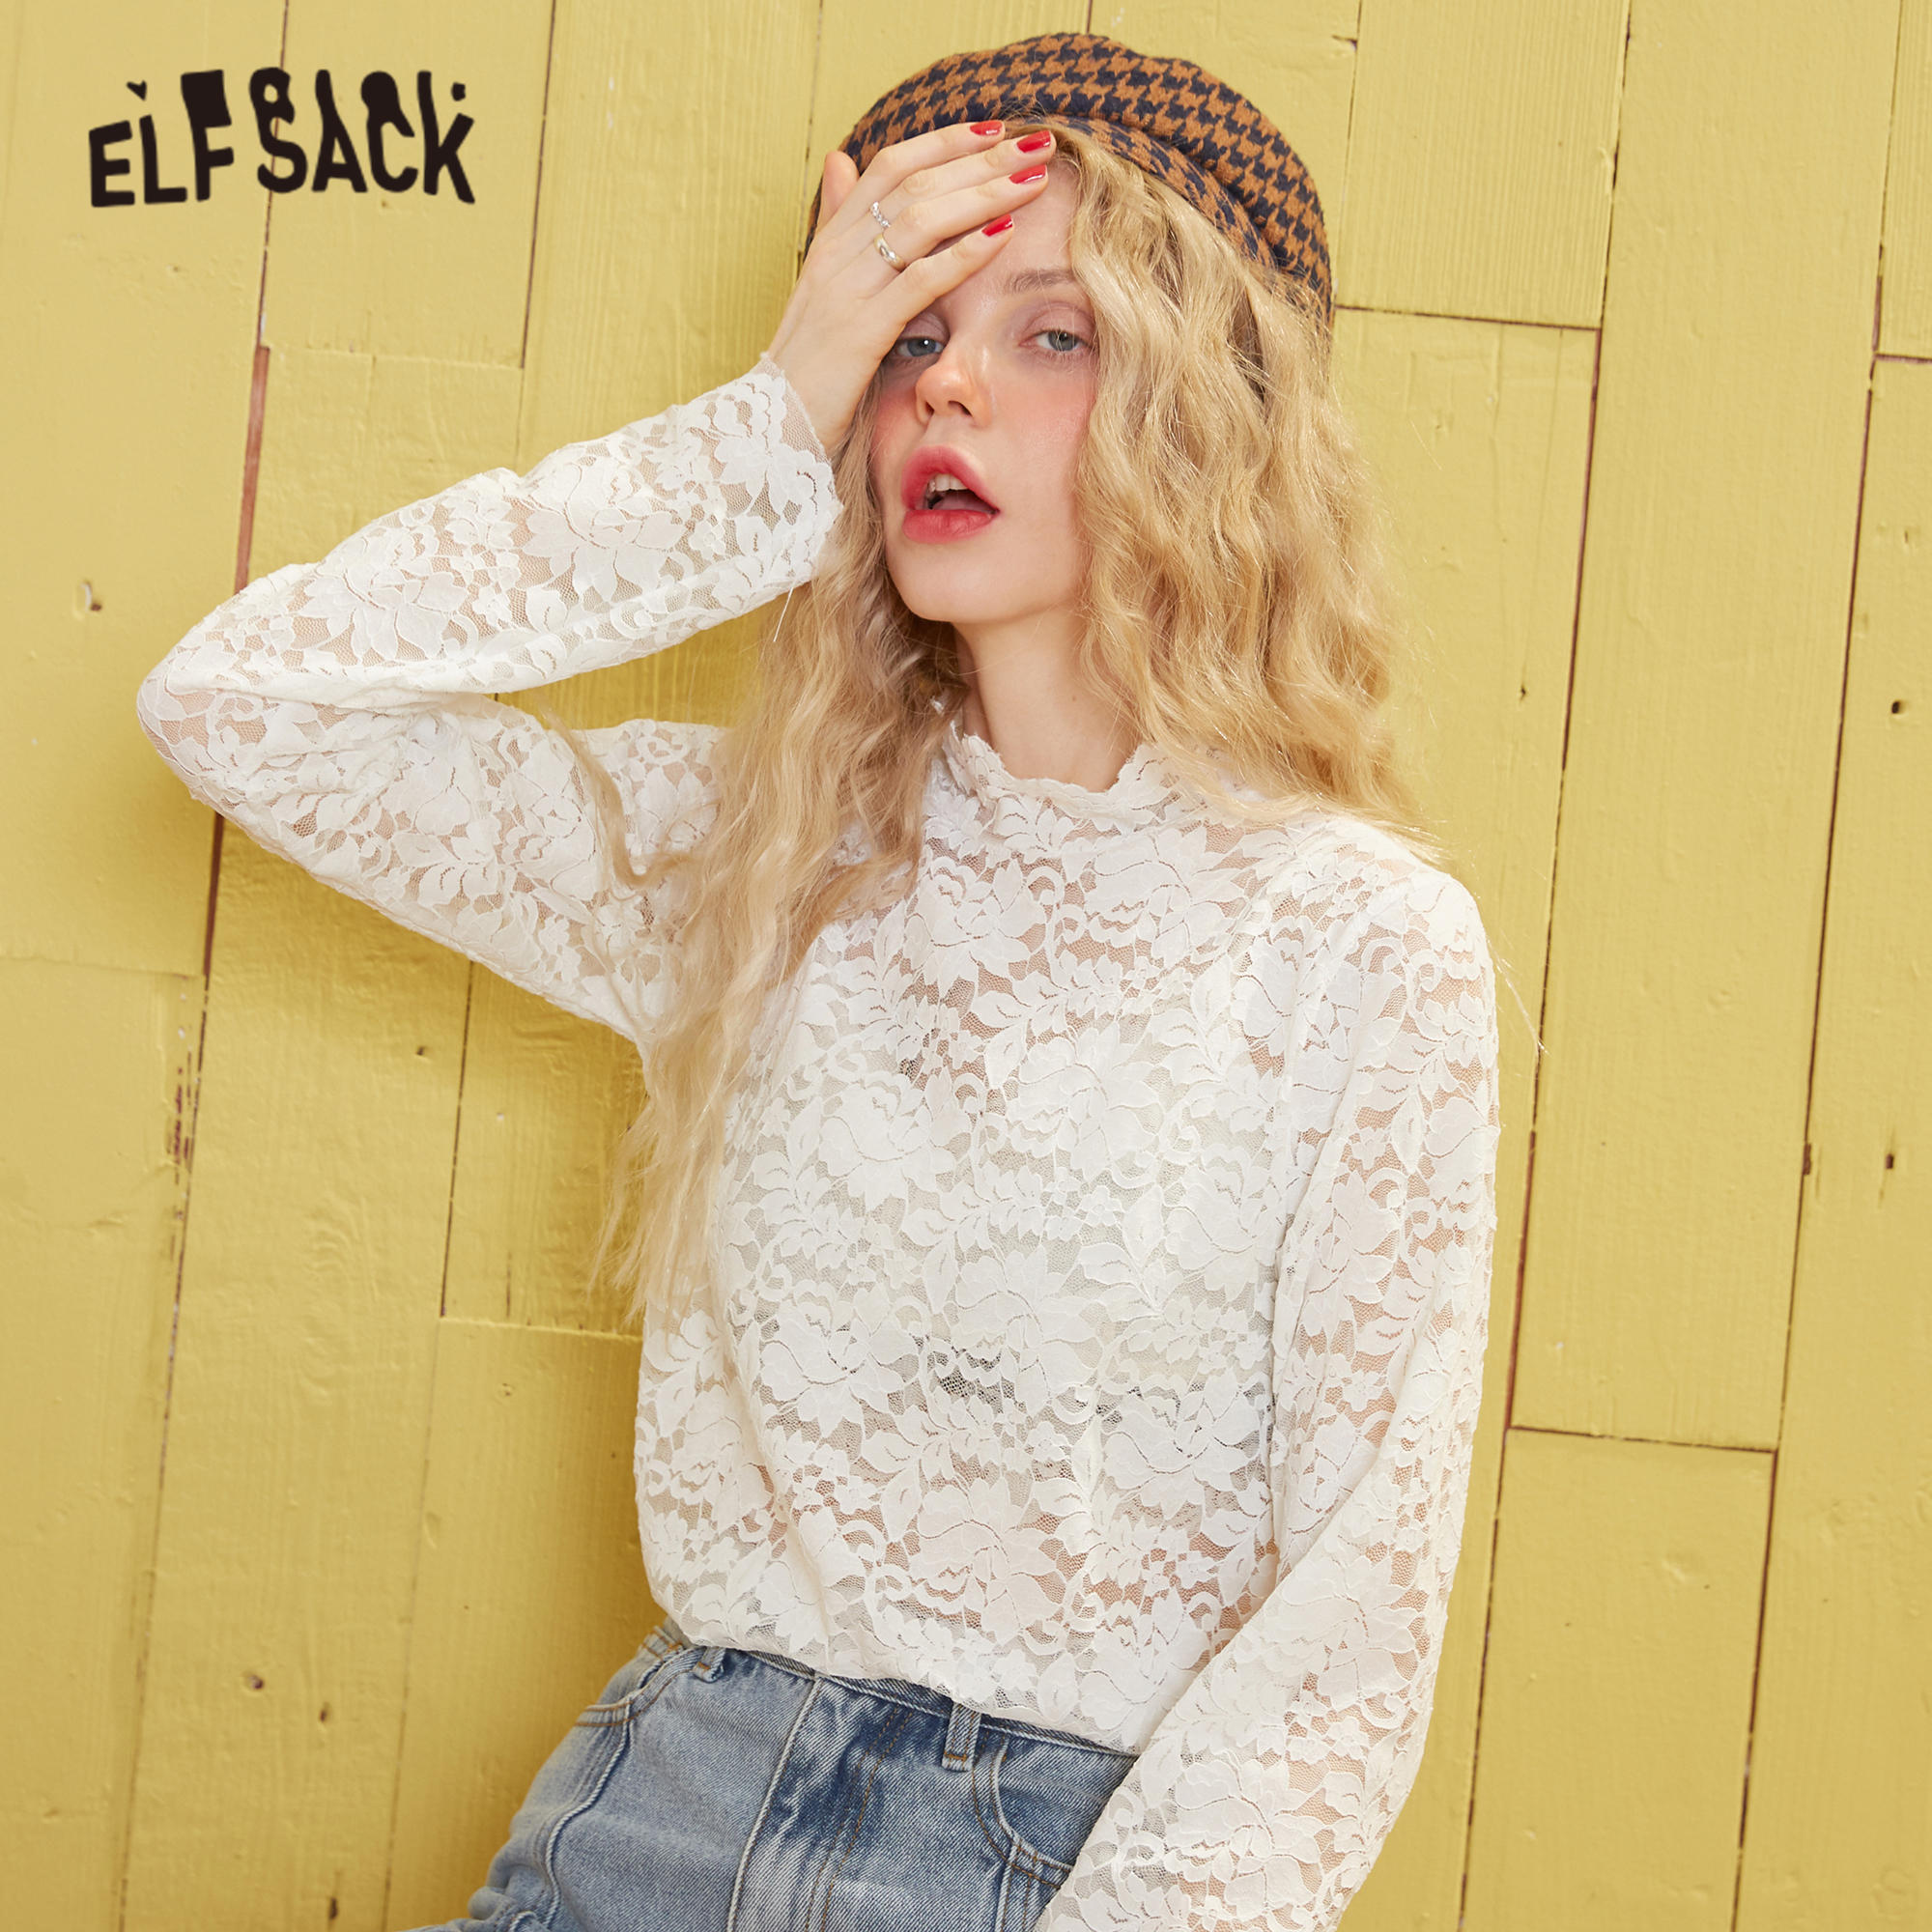 ELFSACK Black Solid Contrast Floral Lace Casual Blouse Women 2020 Spring New White Vintage Long Sleeve Korean Ladies Daily Tops